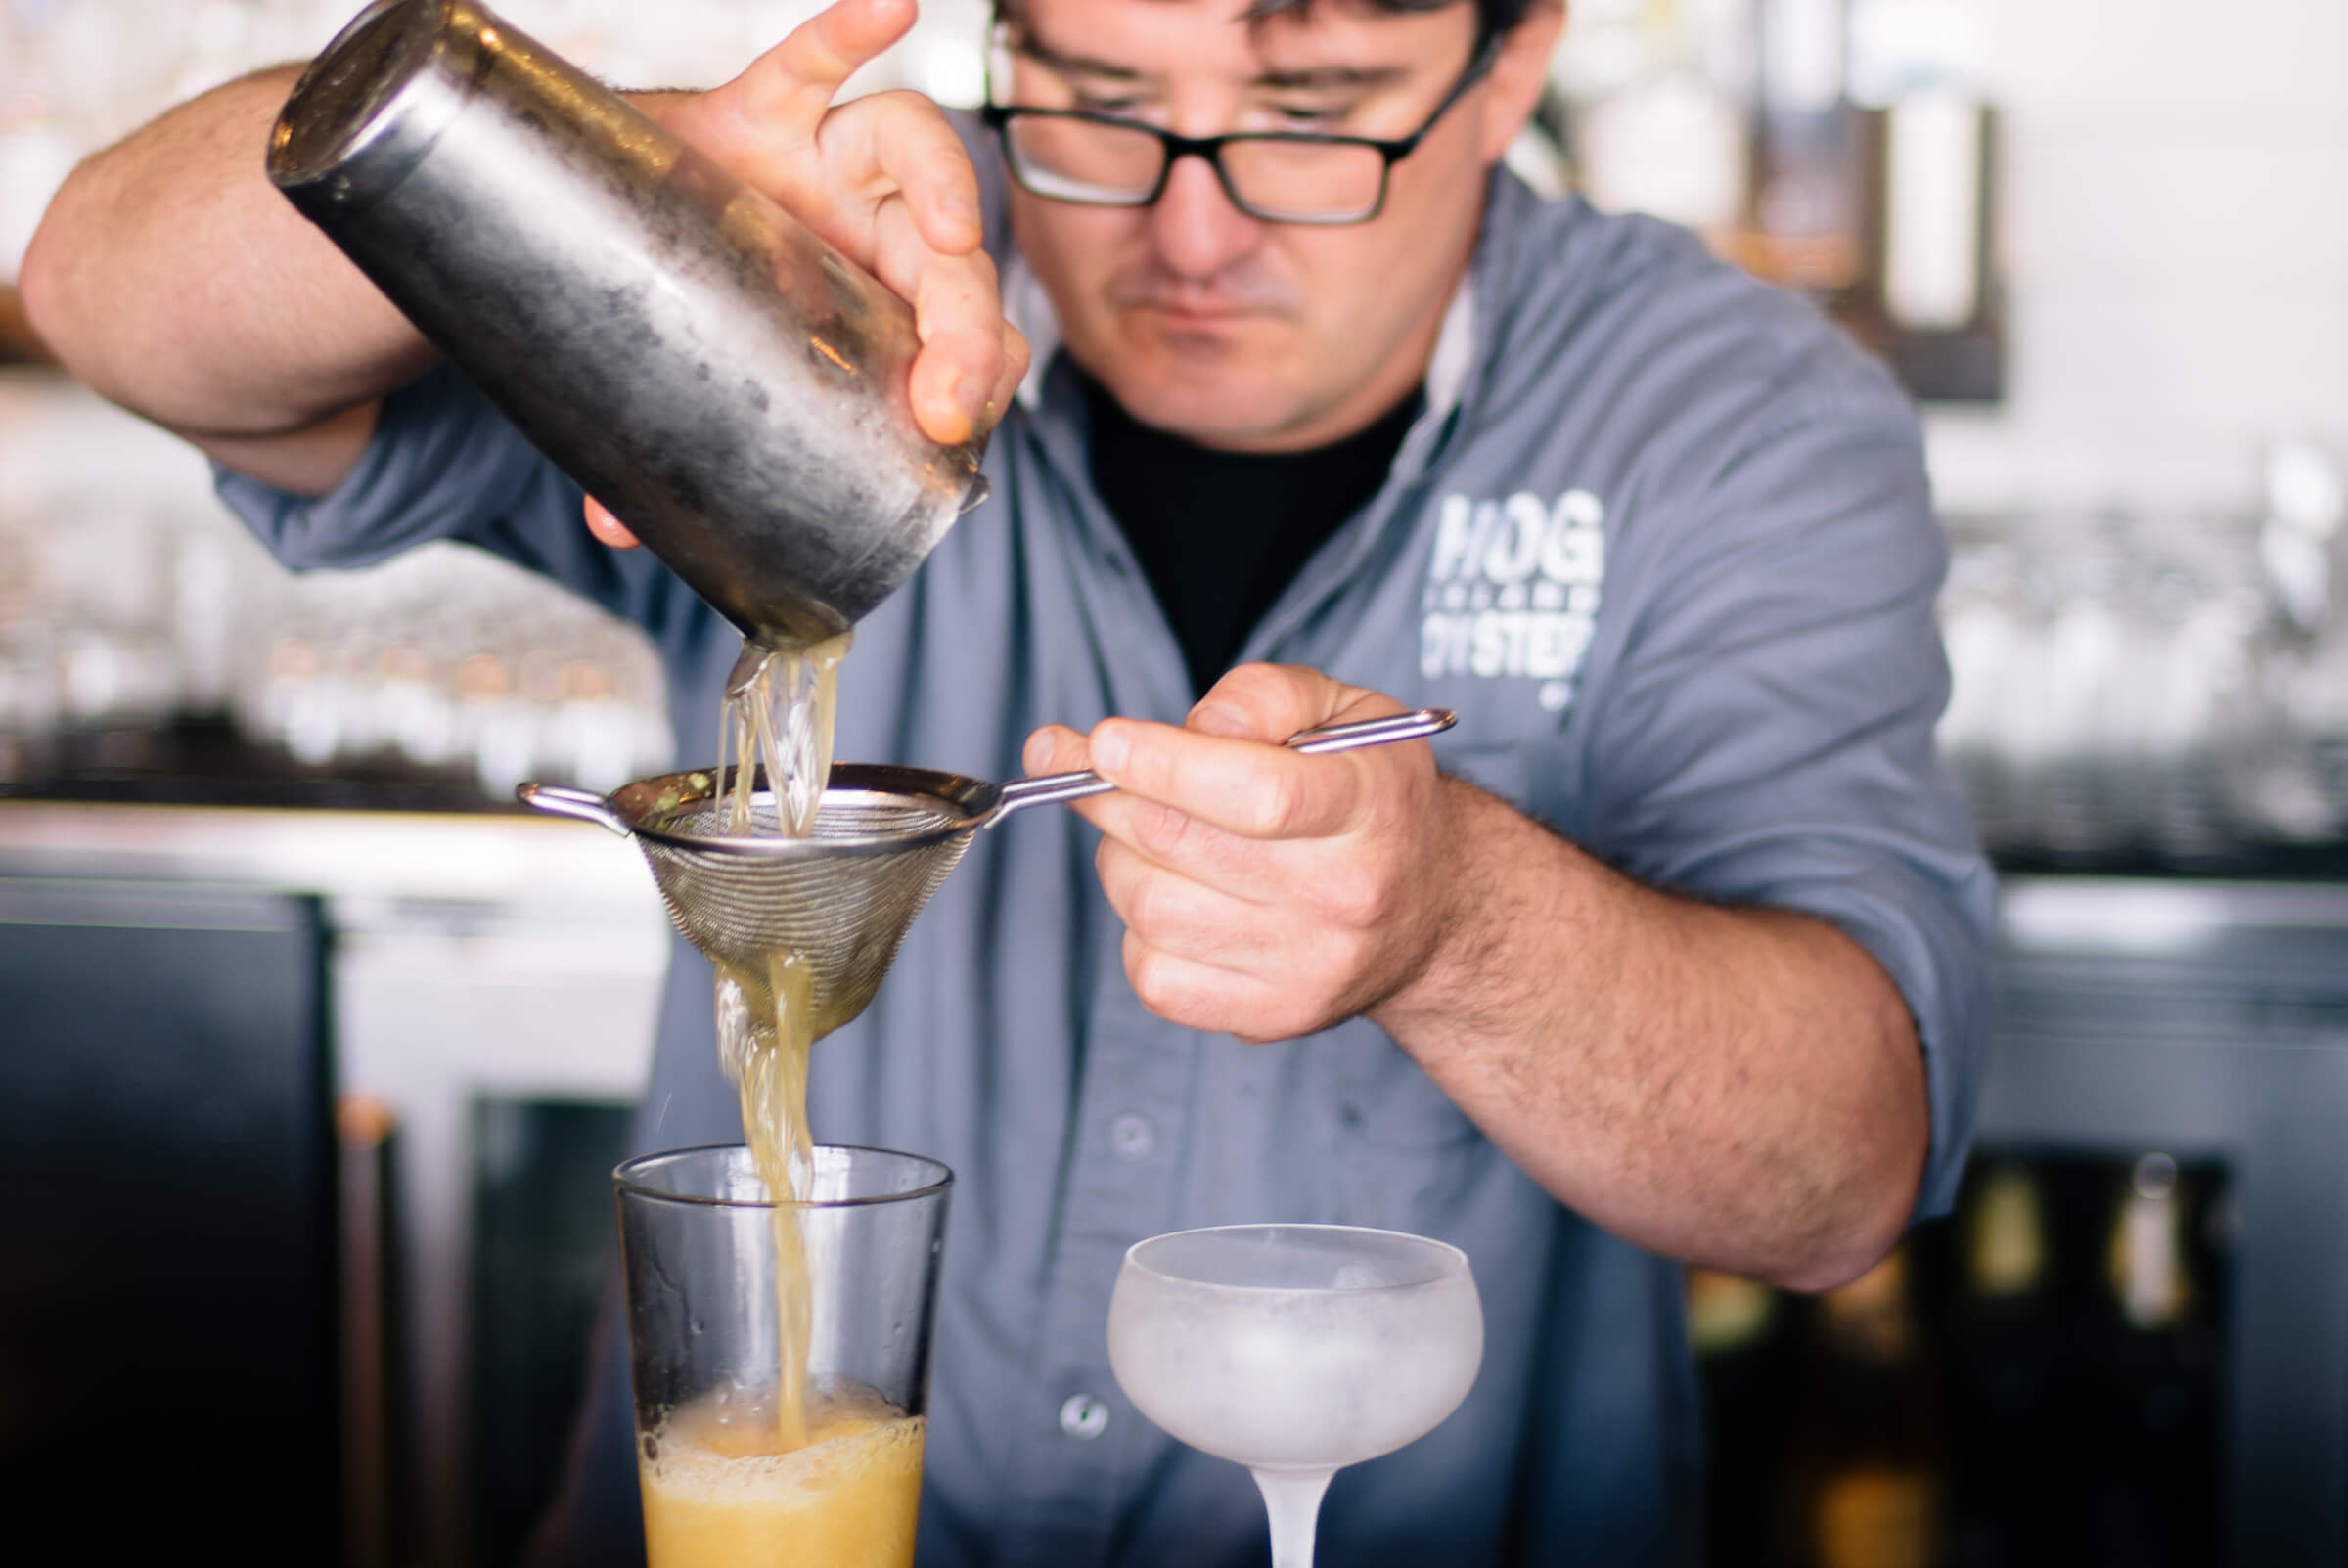 Saul Ranella makes a Pacific Drift Beer Cocktail from Hog Island Oyster Company, The Taste SF